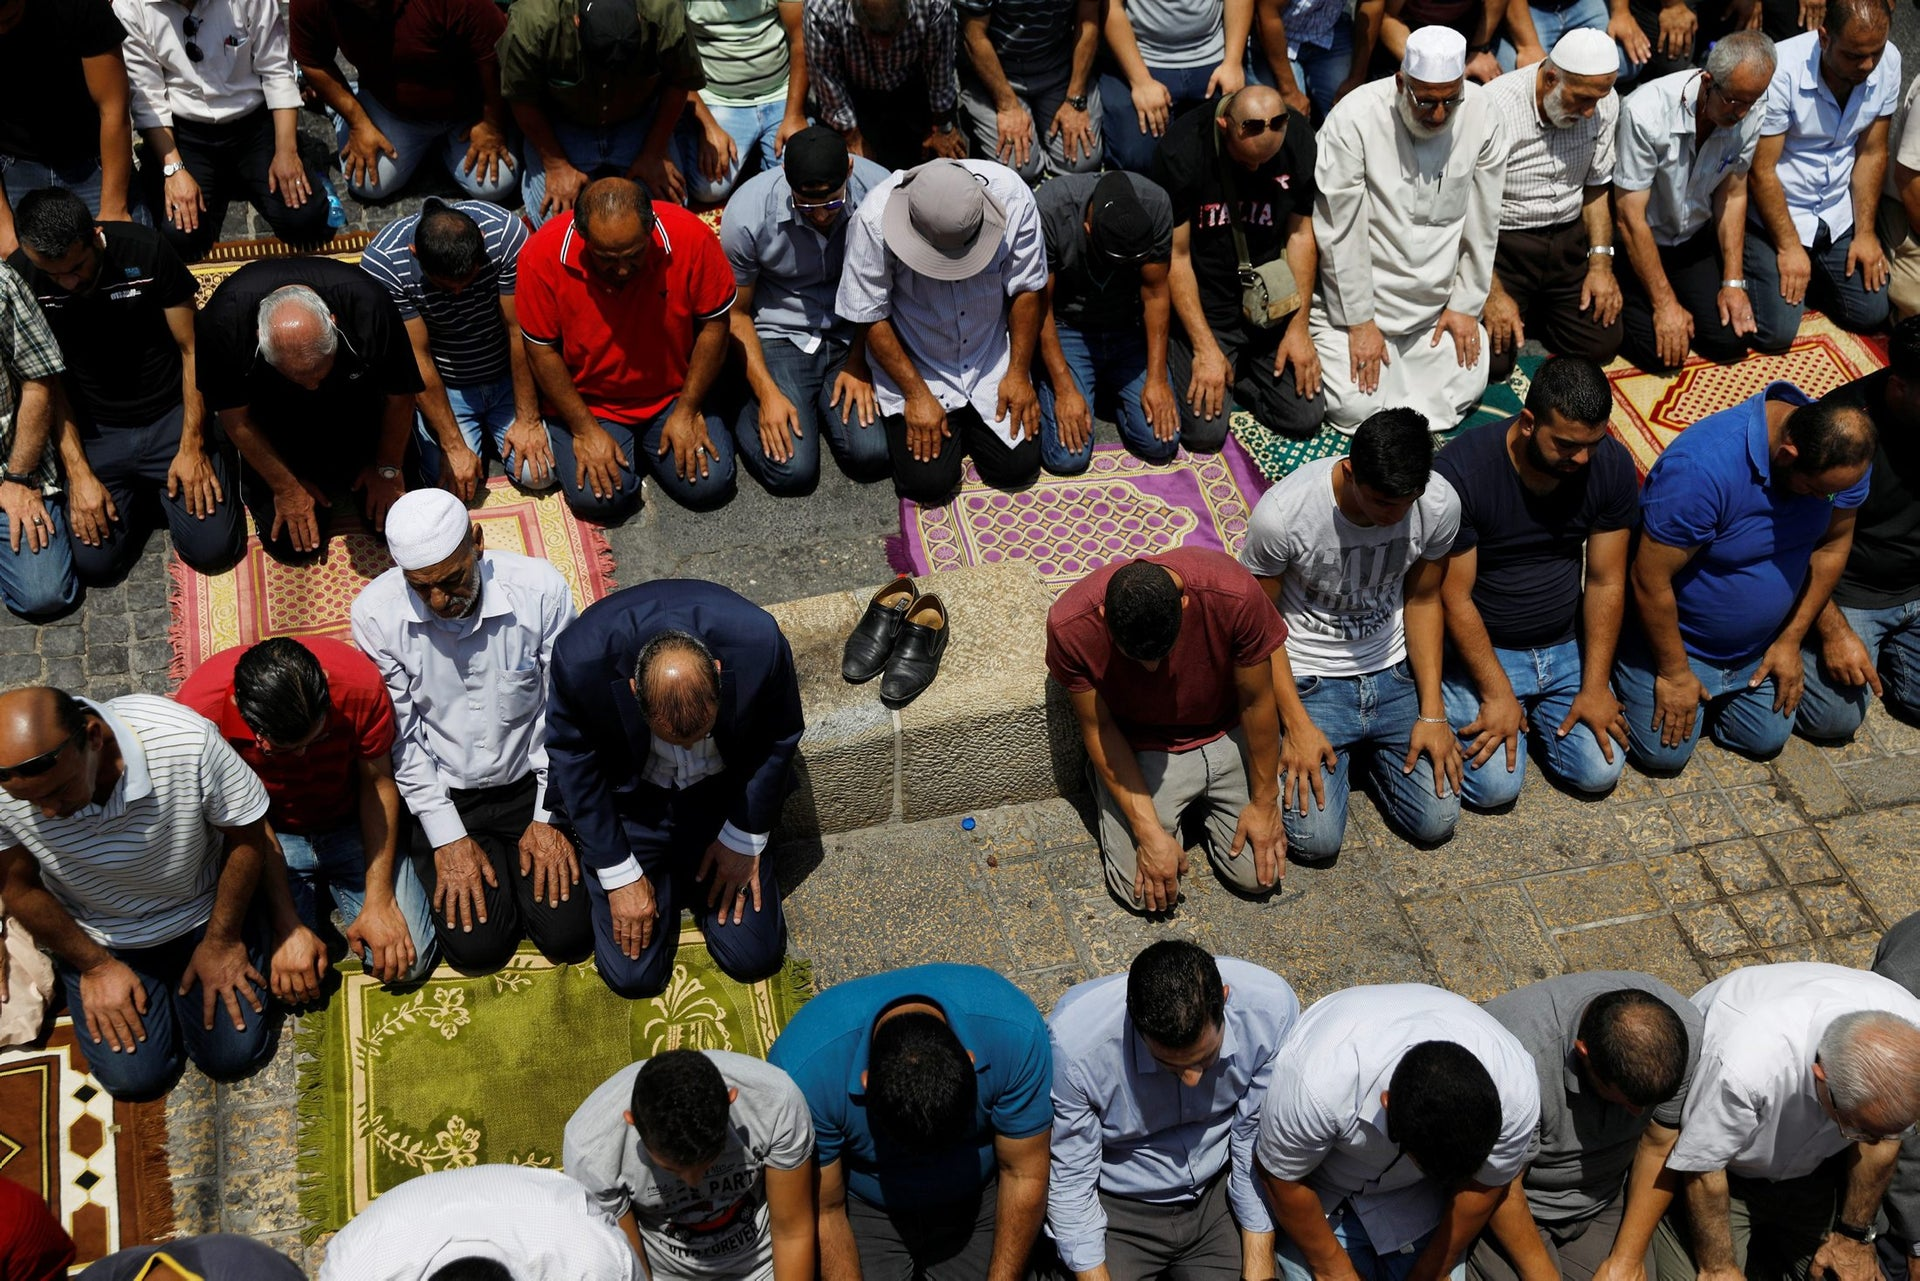 Palestinians pray at Lions' Gate, an entrance to Jerusalem's Old City, in protest over Israel's new security measures at the compound housing al-Aqsa mosque.